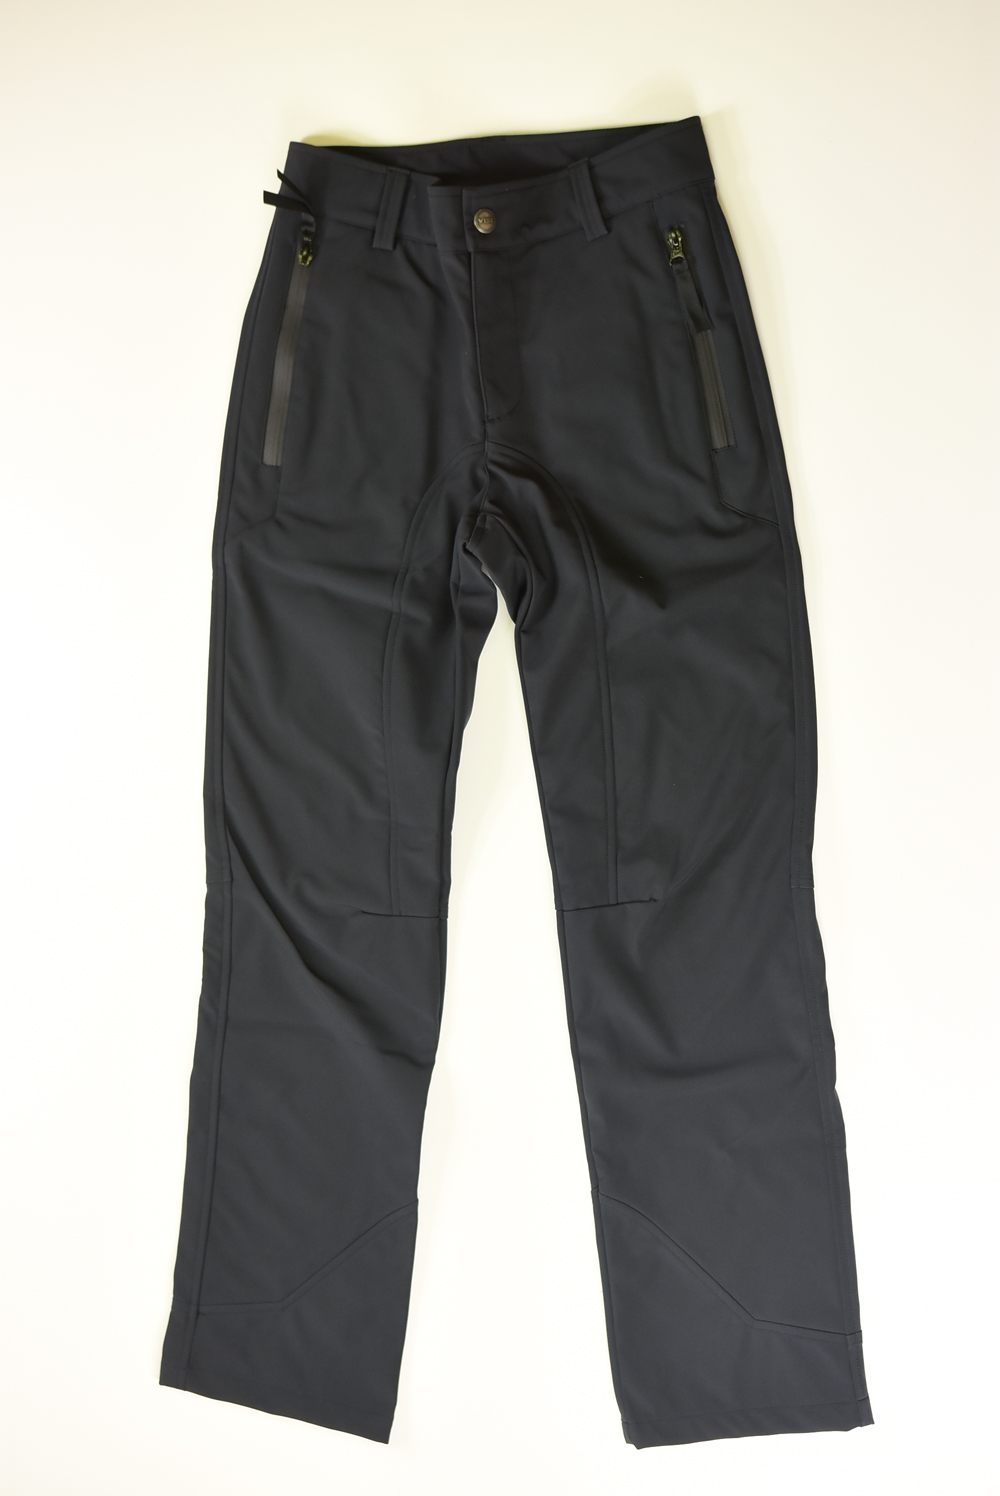 Vist Argos Softshell Pants